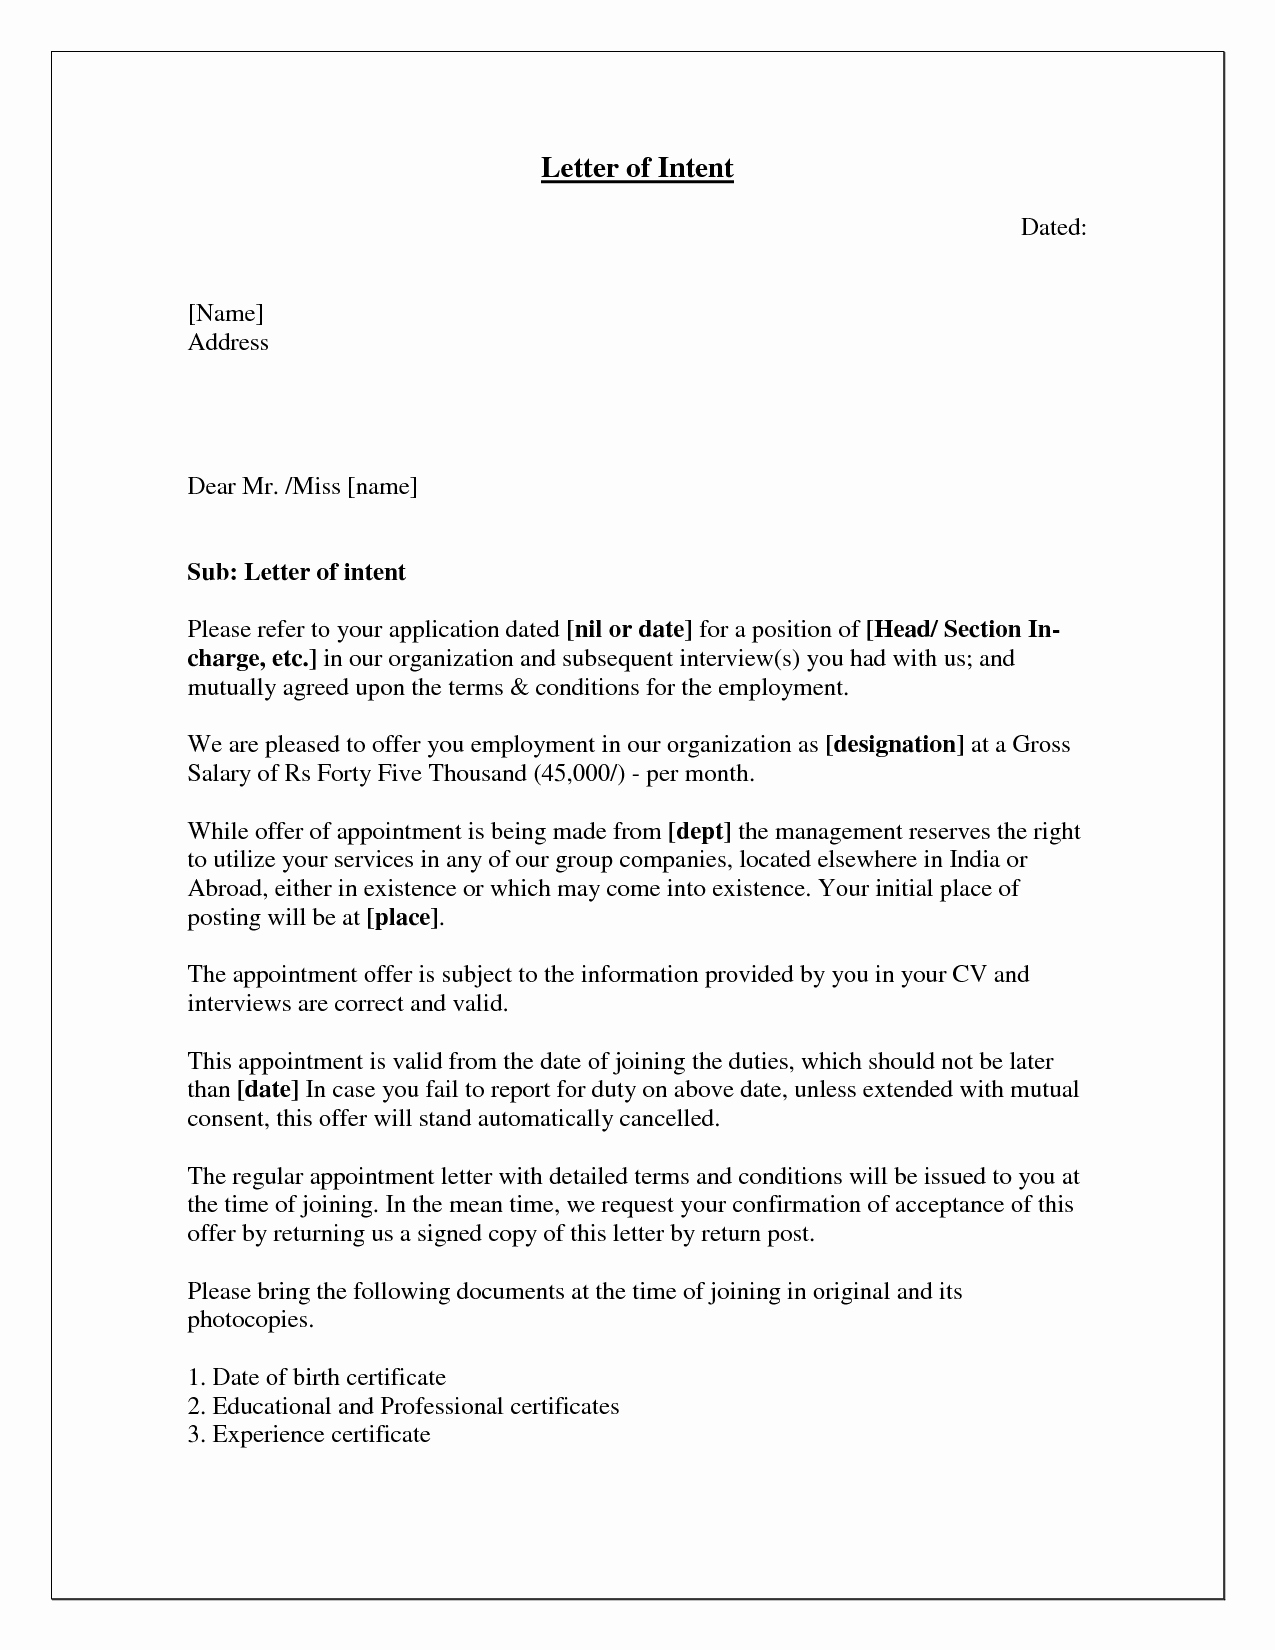 Letter Of Intent Sample Job Best Of How to Write A Letter Of Intent for A Job Application